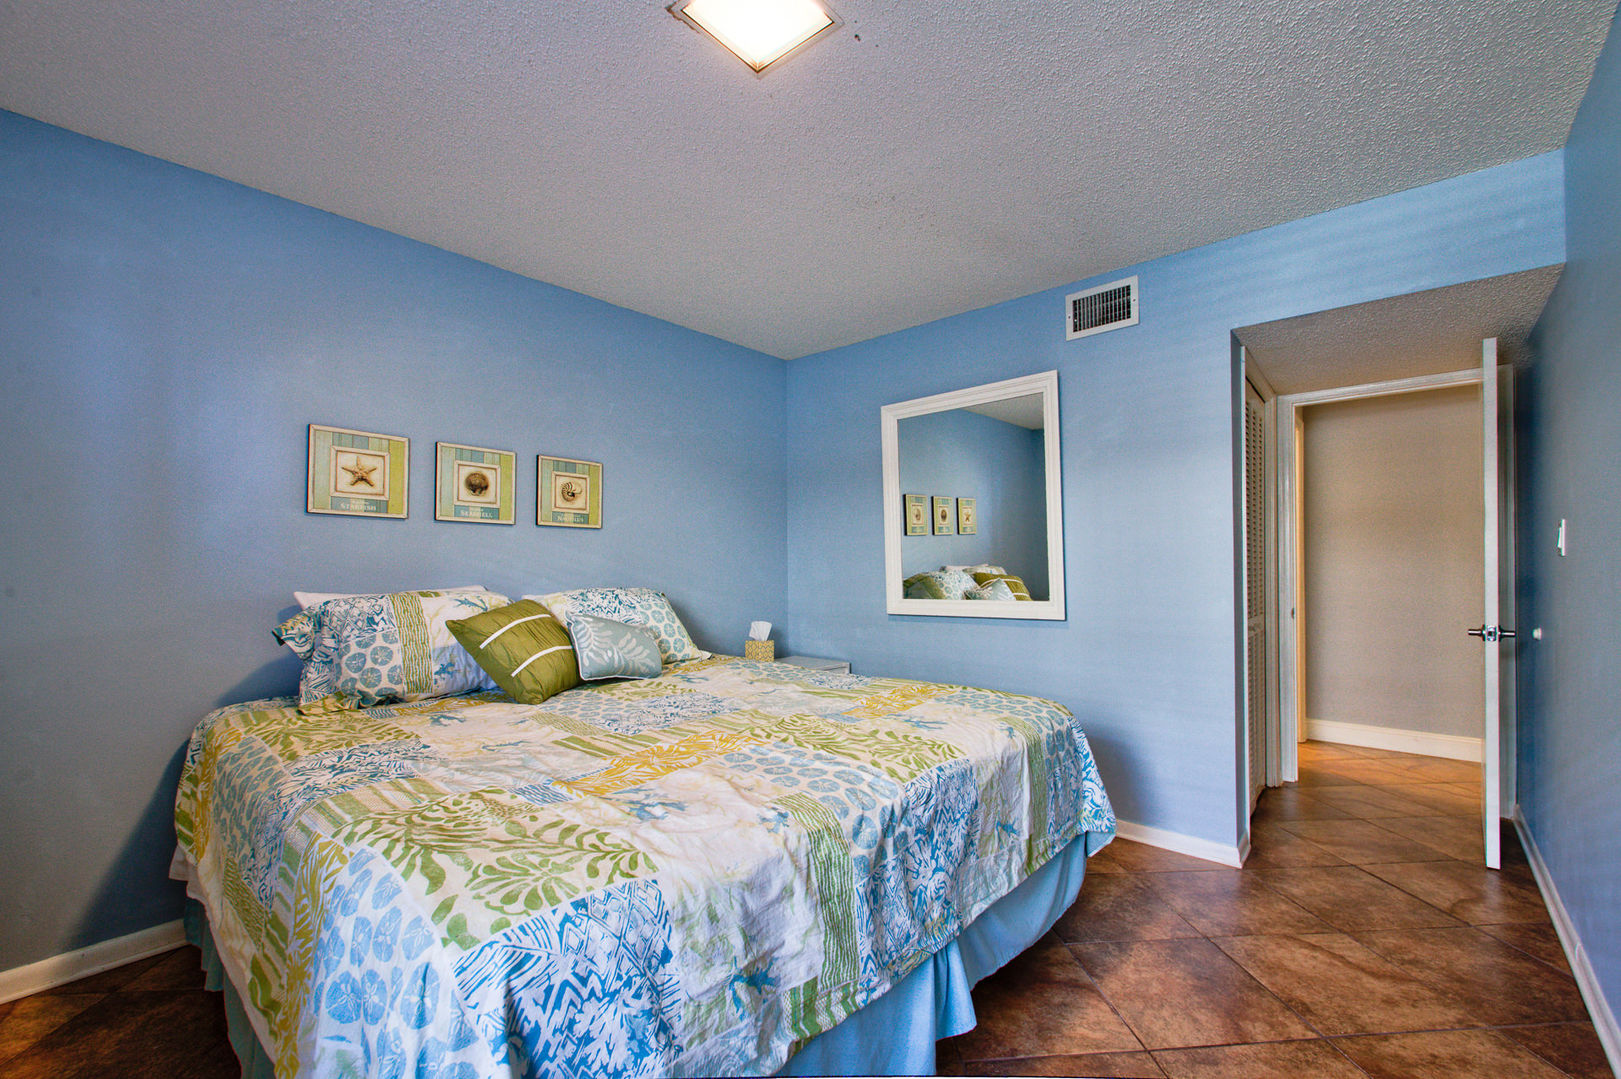 Cool & Comfortable Decor in Bedroom #1